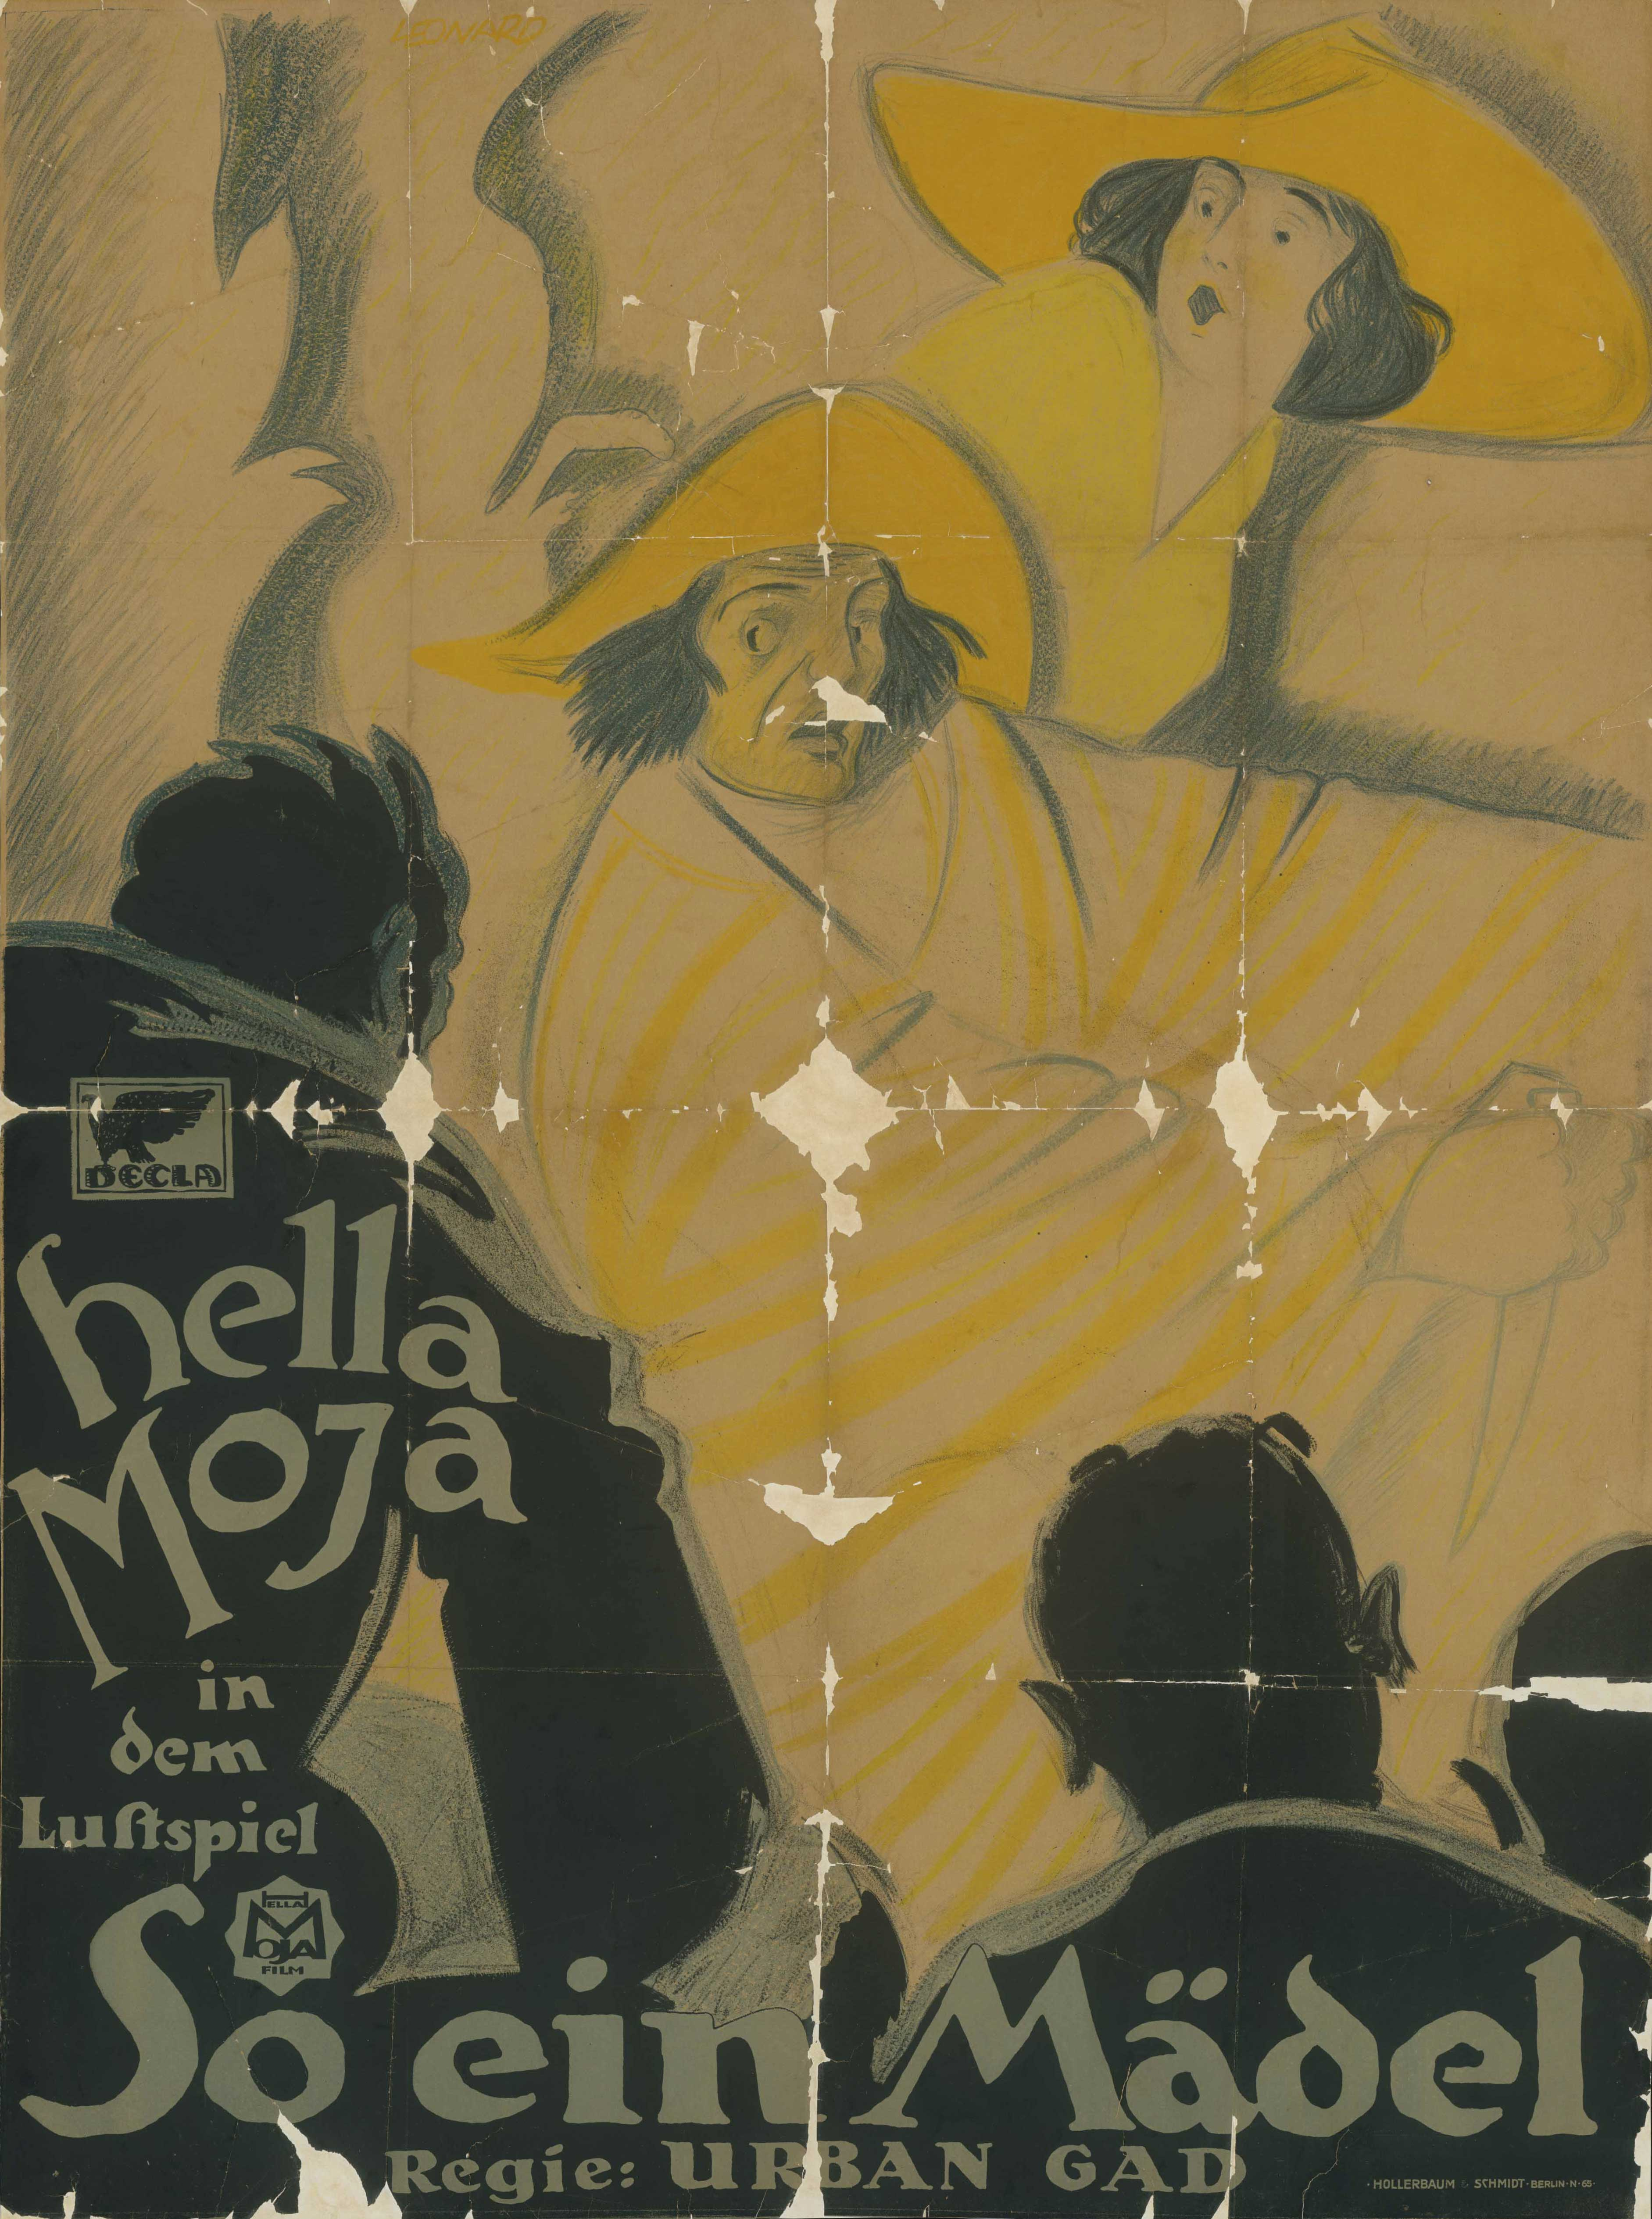 Film poster for So ein Mädel, Germany 1919/1920